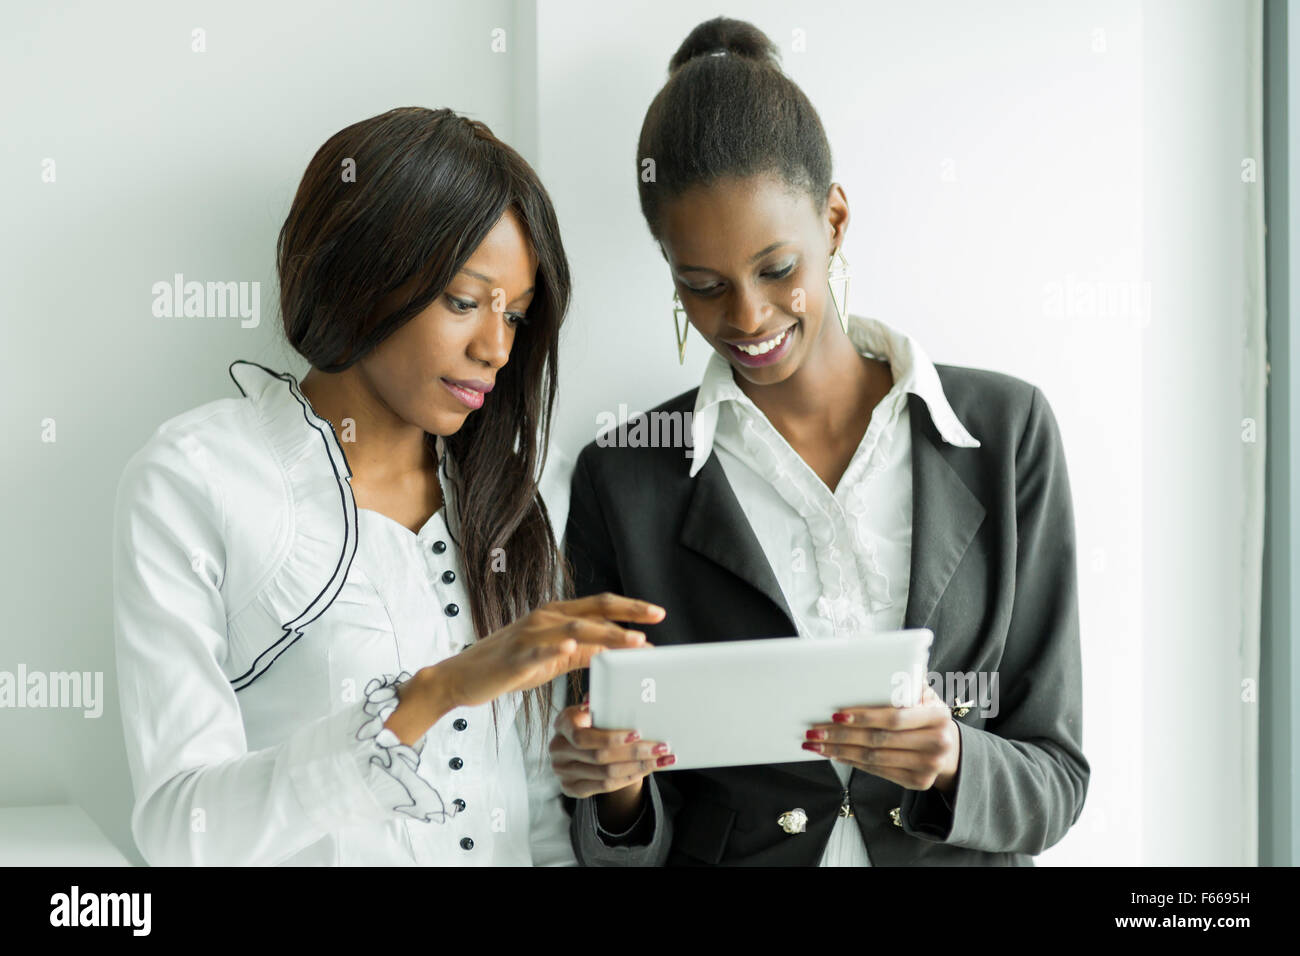 Two colleagues talking while standing about the contents on a tablet pc in a well lit office close to the window Stock Photo